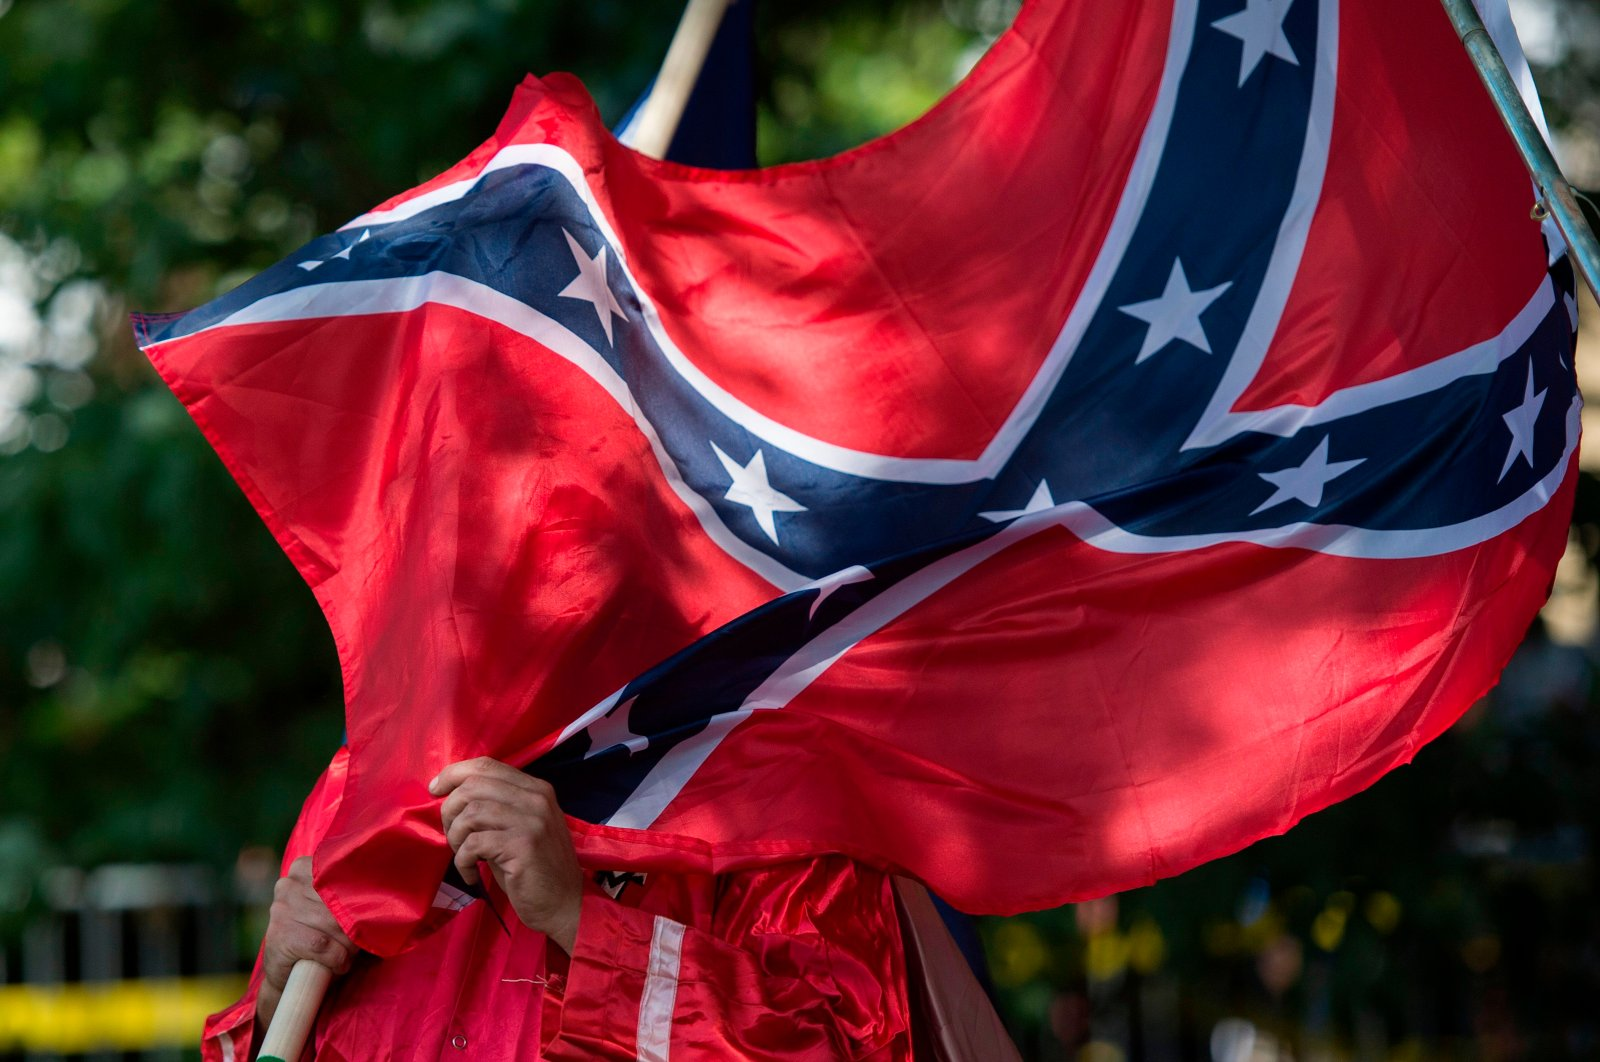 A member of the Ku Klux Klan holds a Confederate flag over his face during a rally, calling for the protection of Southern Confederate monuments, in Charlottesville, Virginia on July 8, 2017. (AFP Photo)